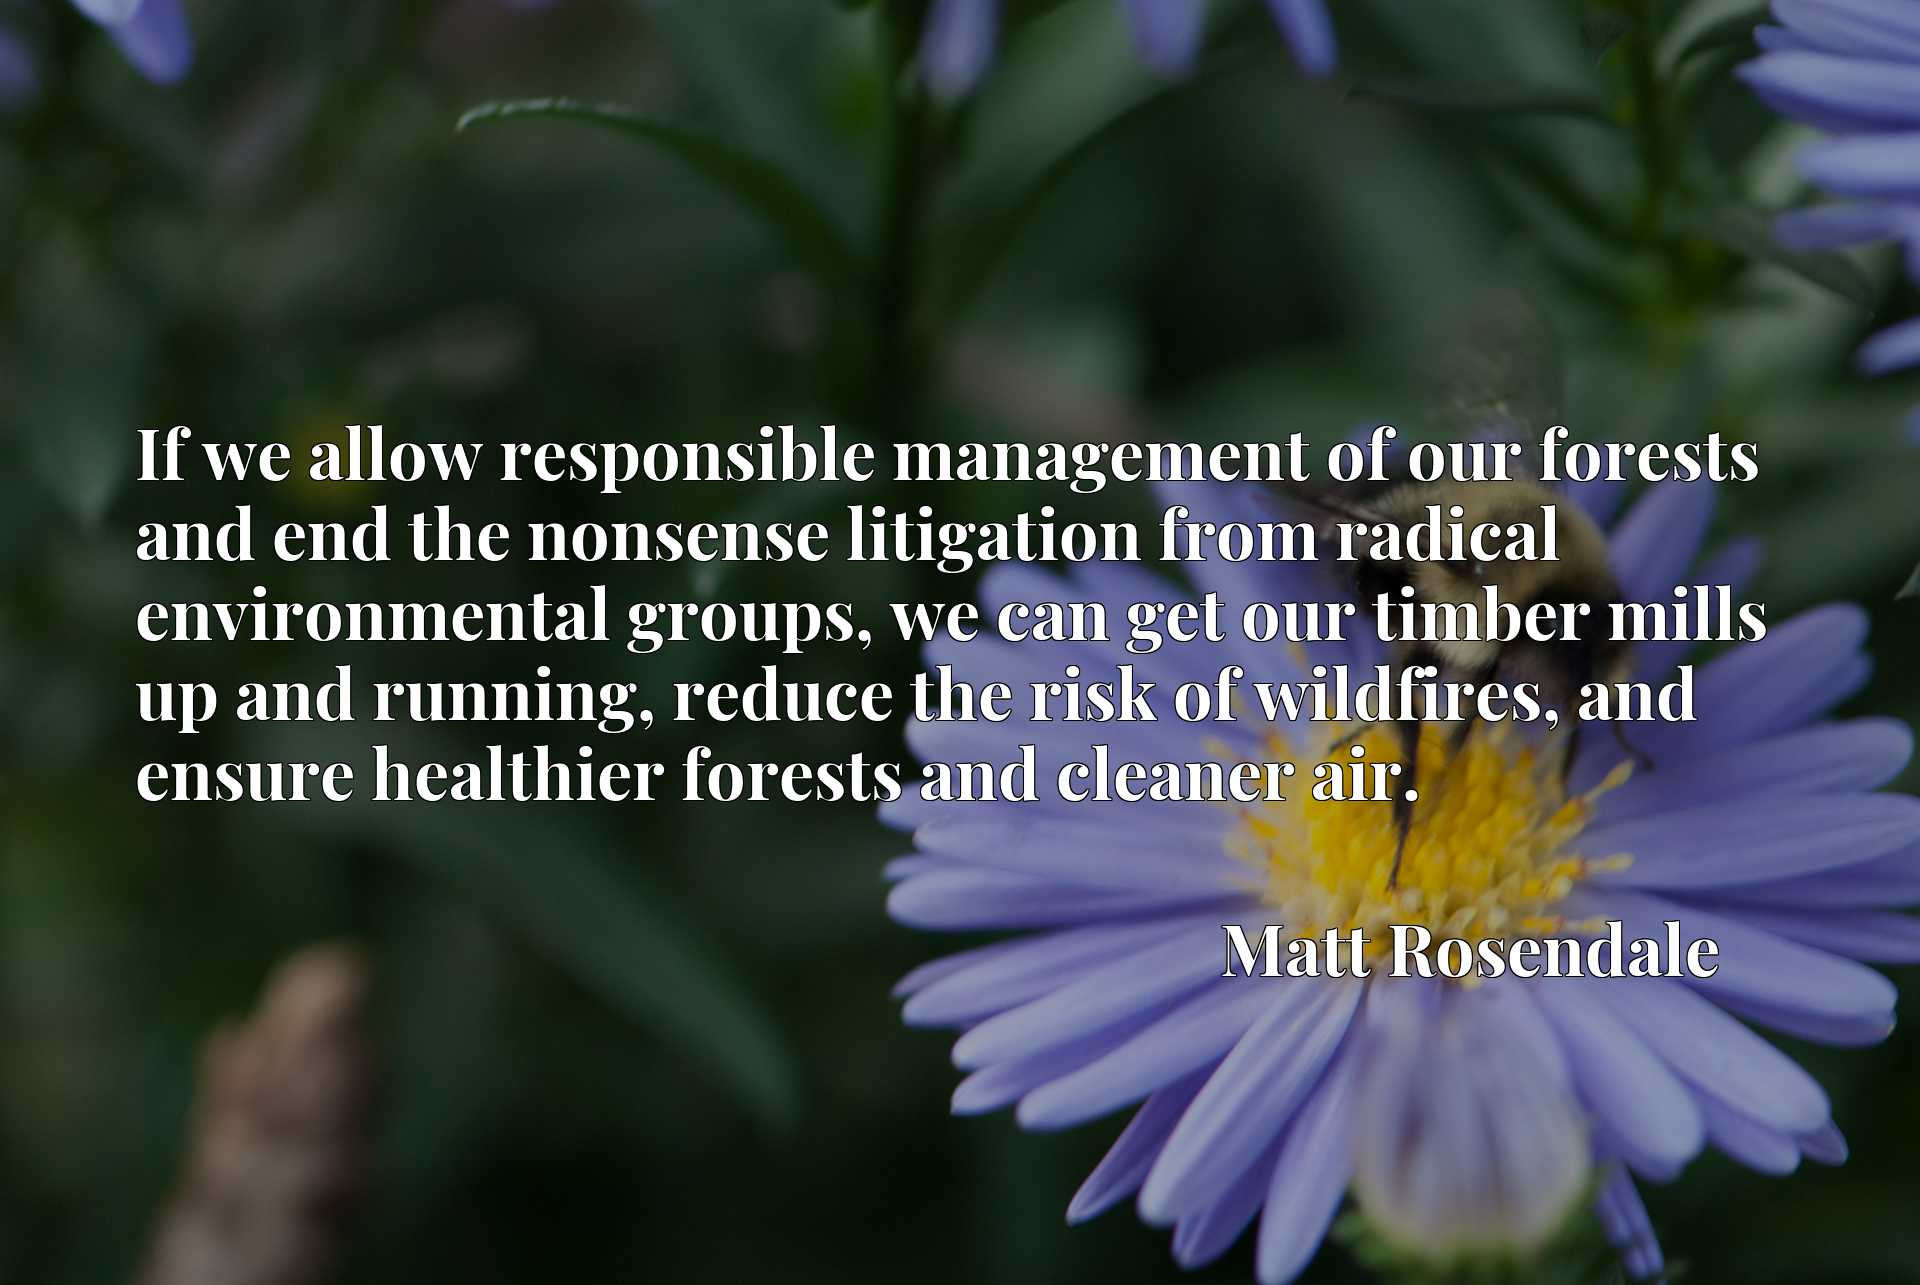 If we allow responsible management of our forests and end the nonsense litigation from radical environmental groups, we can get our timber mills up and running, reduce the risk of wildfires, and ensure healthier forests and cleaner air.